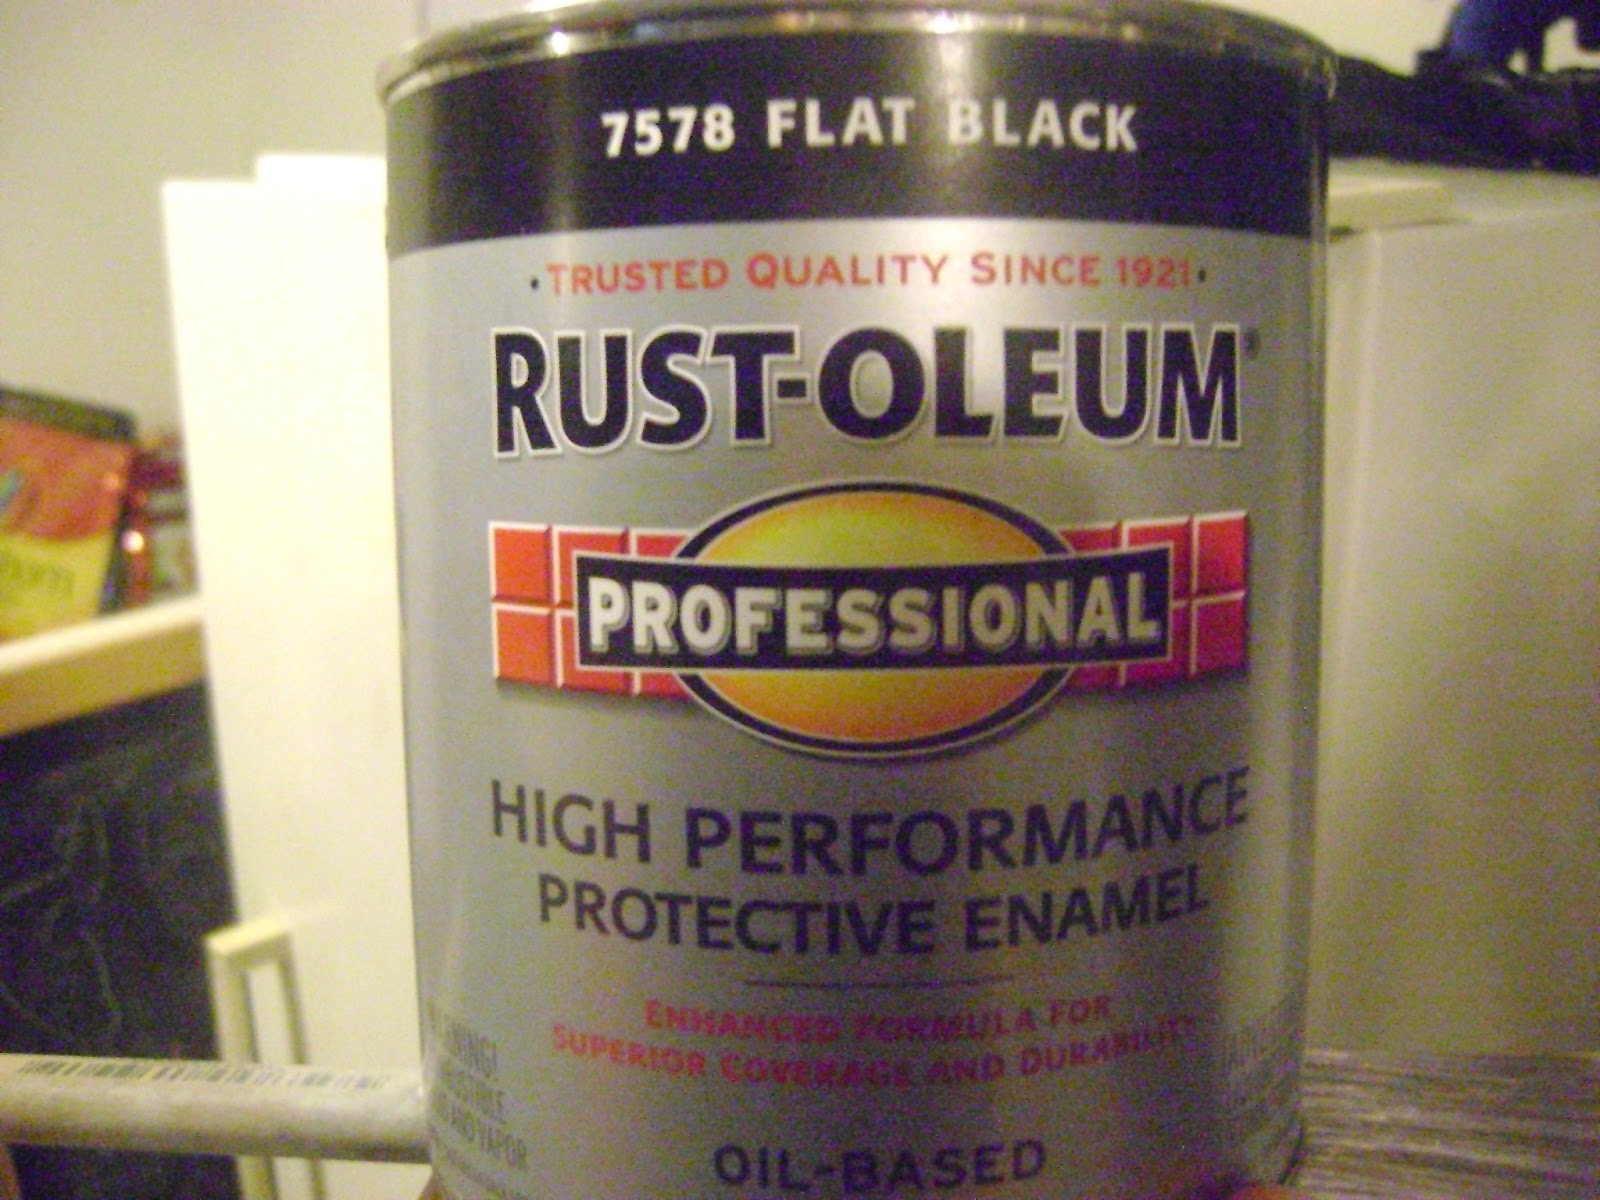 Rustoleum Countertop Paint With Flakes : ... main color on the counter tops I used the Flat BlackRust-Oleum paint